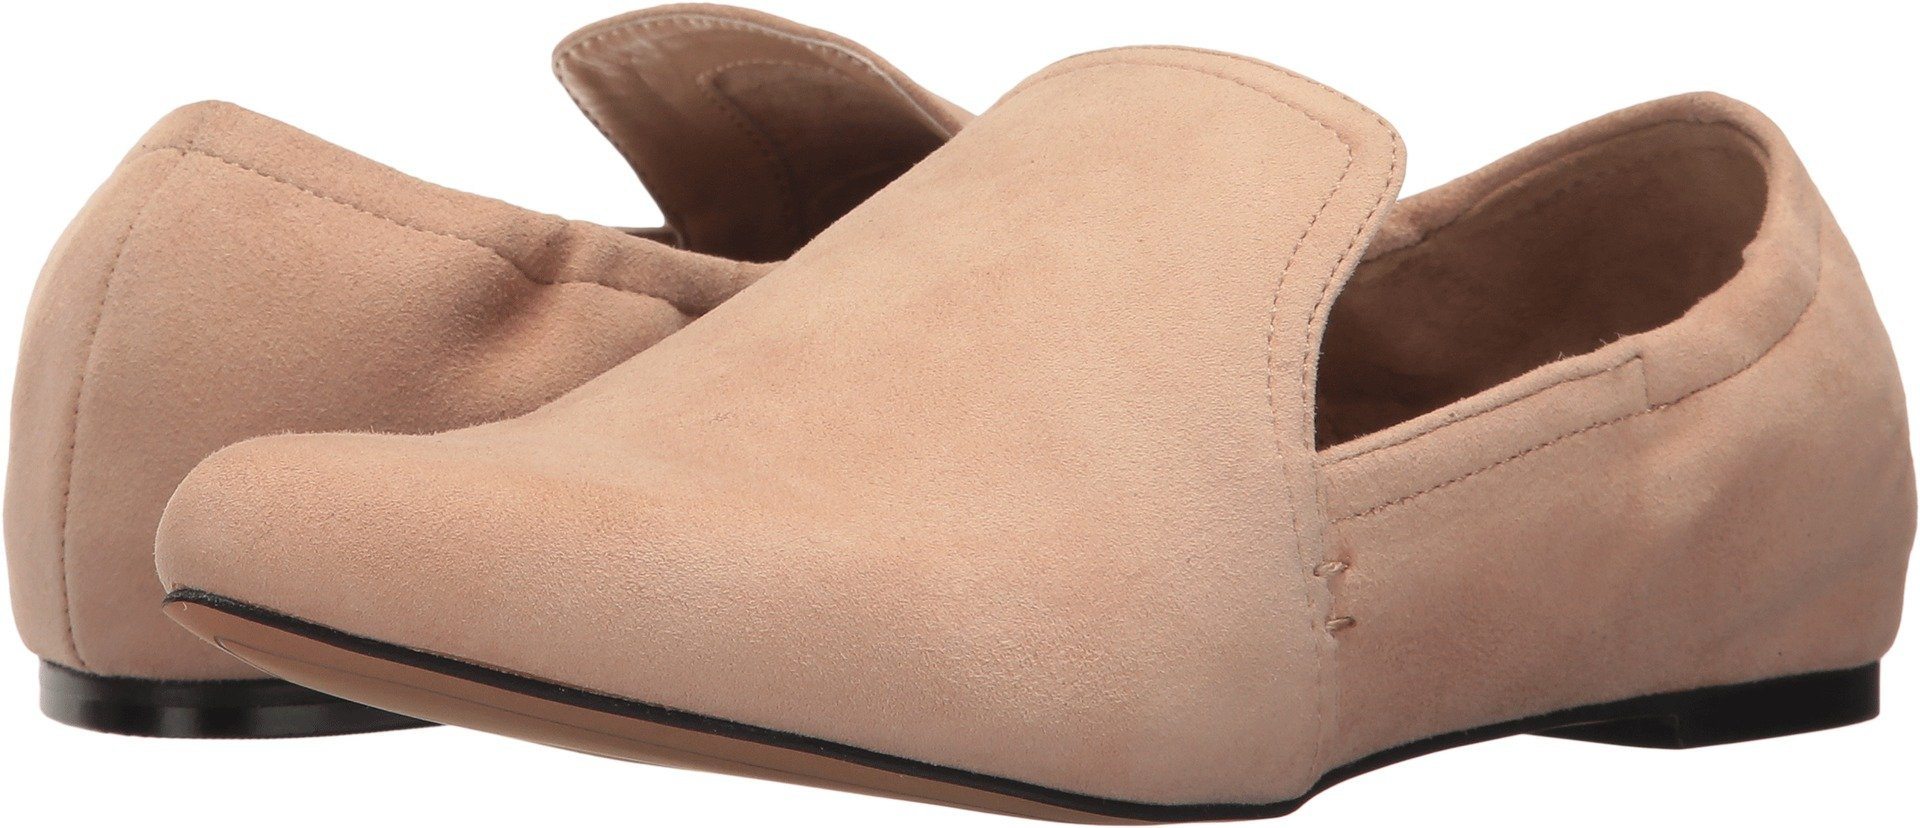 Dolce Vita Women's Hamond Loafer Flat, Blush Suede, 7.5 Medium US